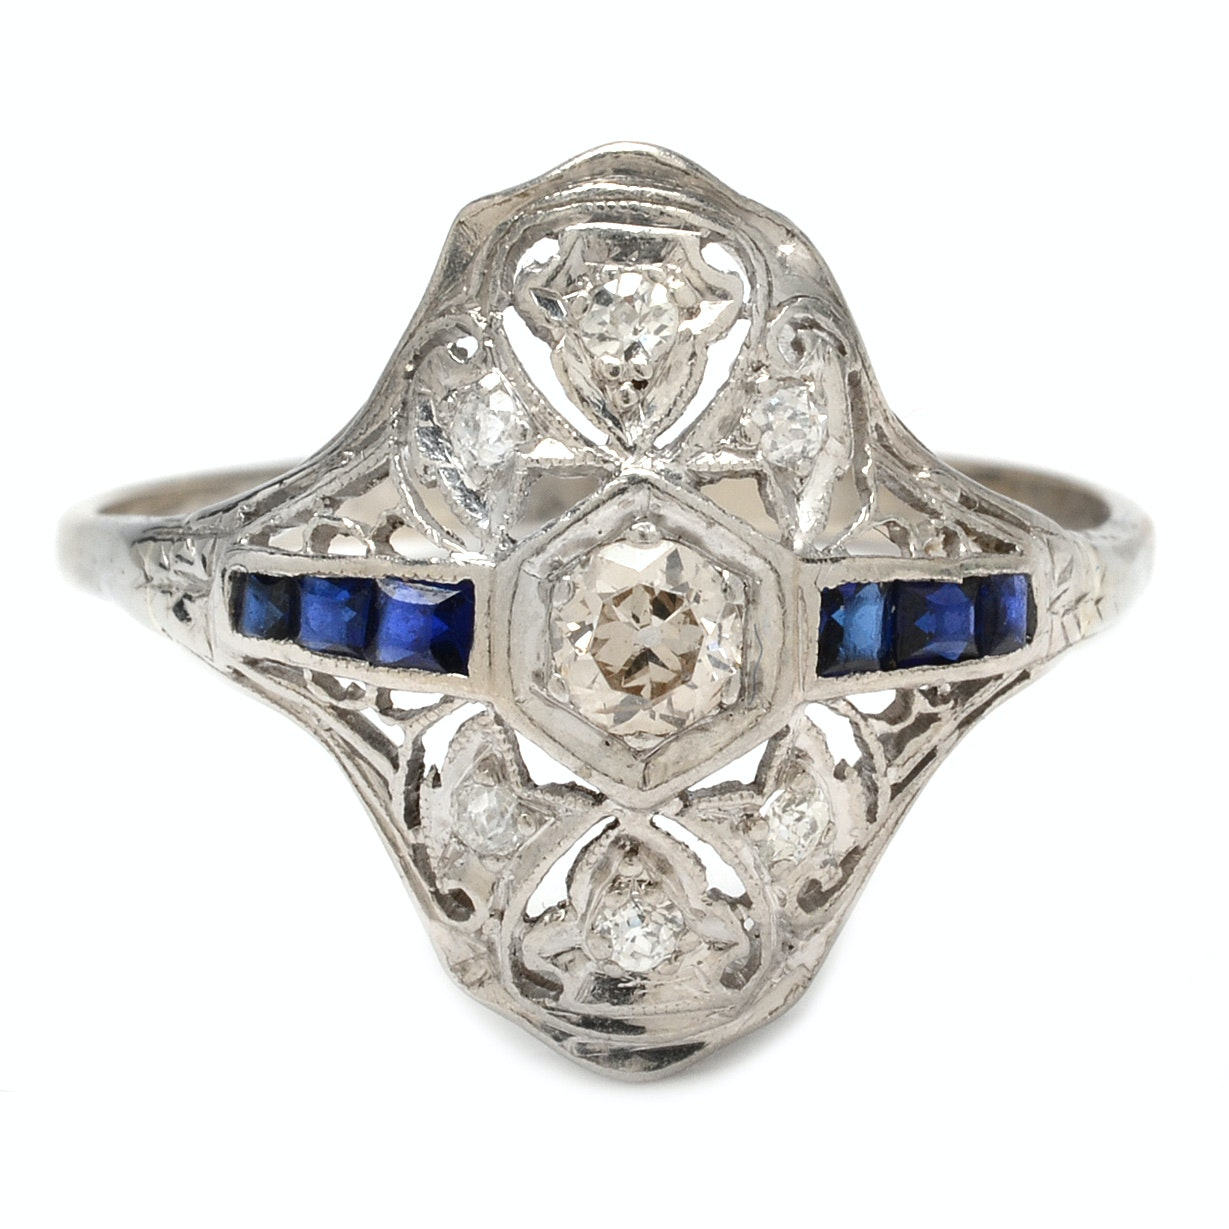 Late Edwardian Mixed White Gold and Platinum Diamond and Sapphire Dinner Ring